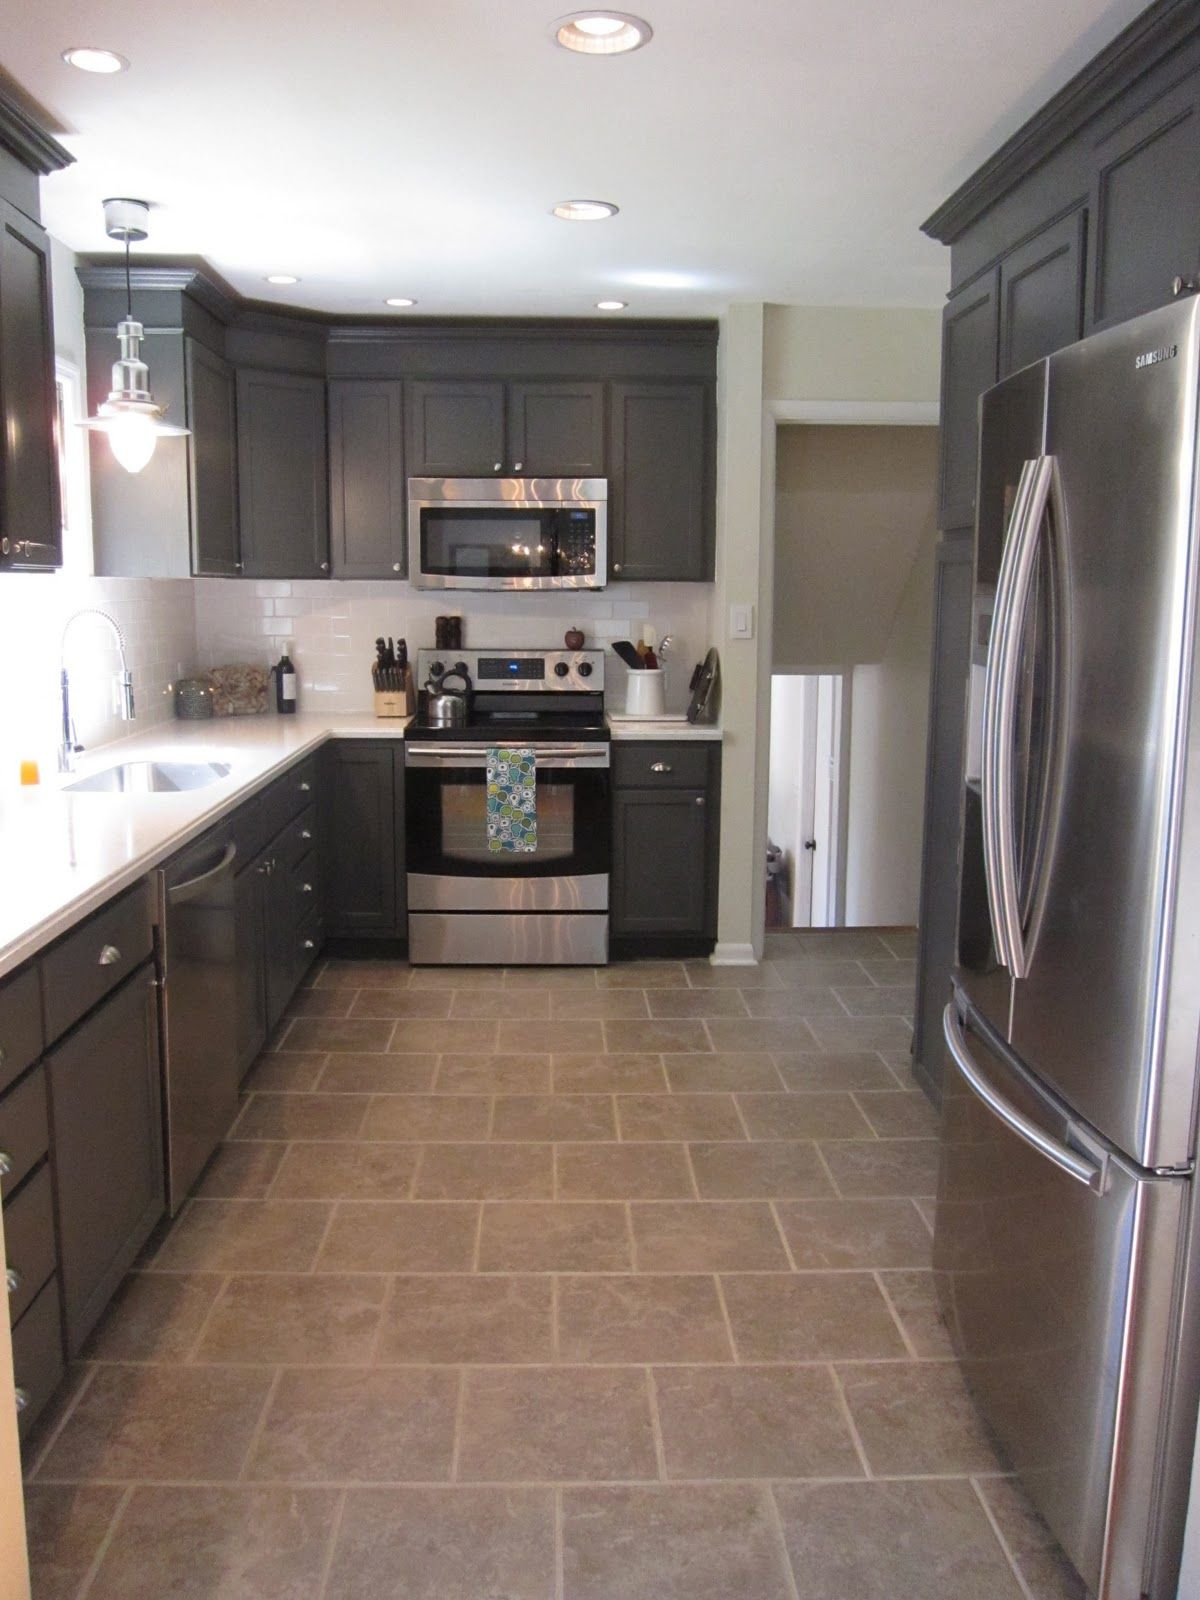 Black Kitchen Walls White Cabinets charcoal grey kitchen cabinets | grey kitchen cabinets, gray